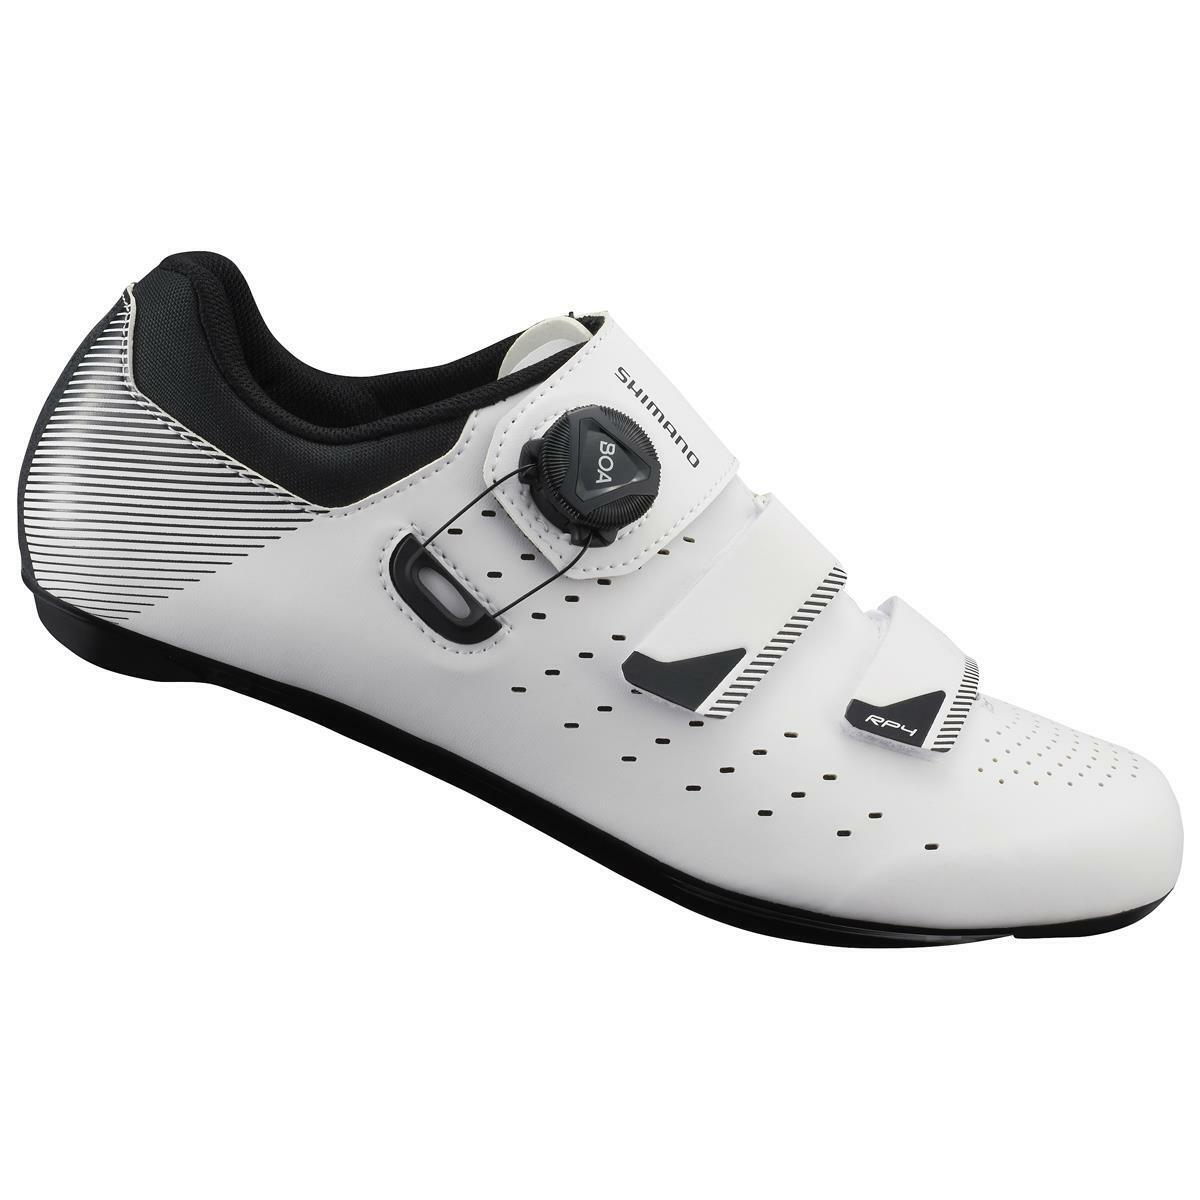 Running shoes rp400 sh-rp400sw white 2019 SHIMANO shoes bike